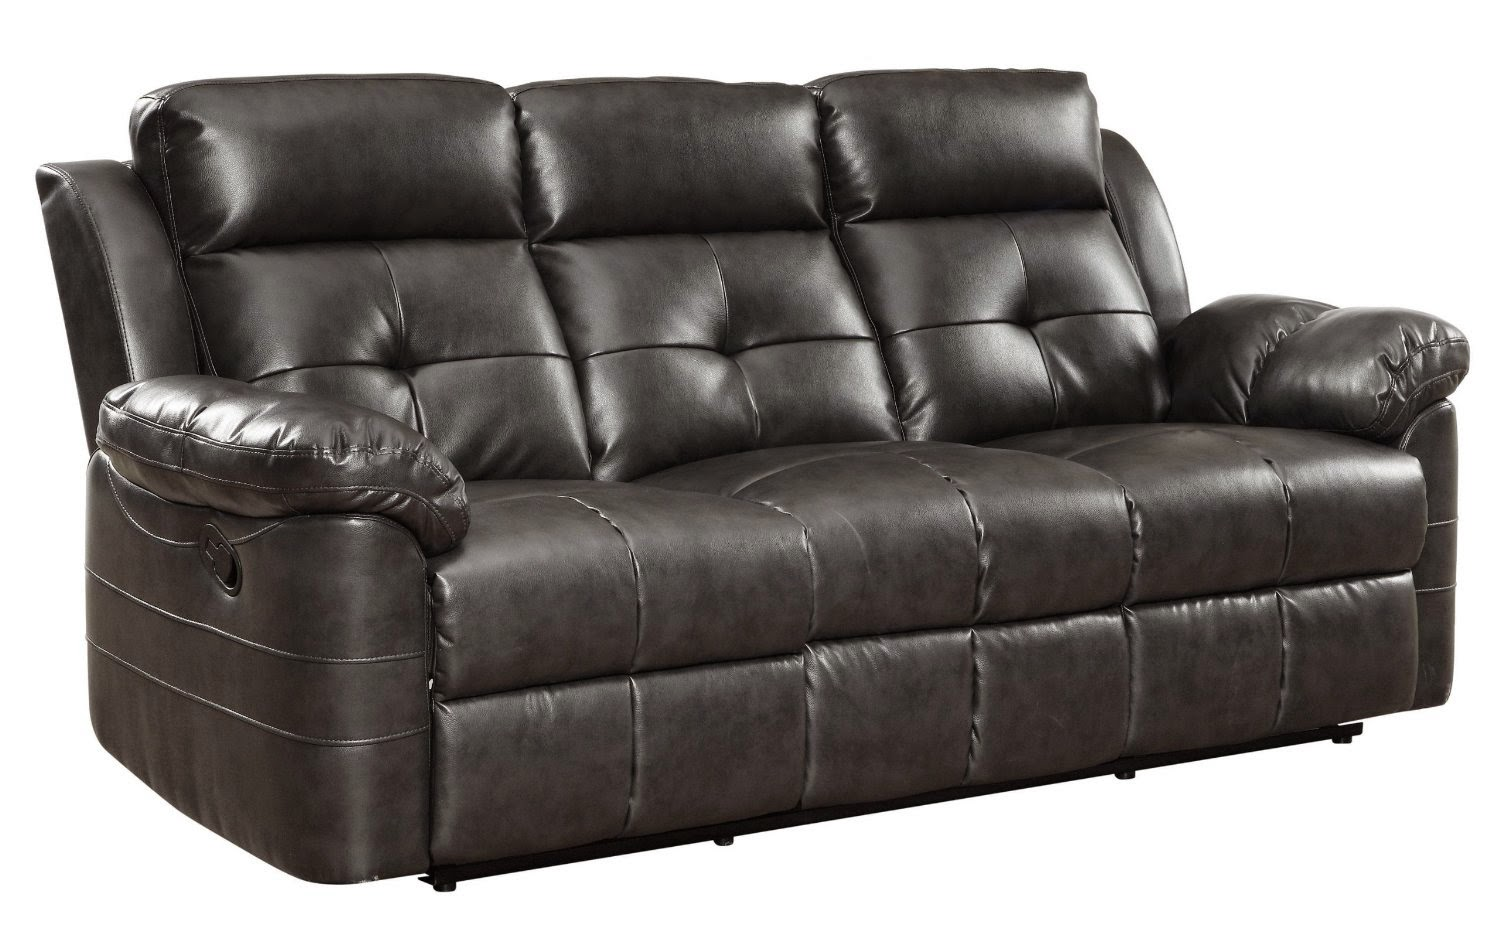 Black Curved Leather Reclining Sofa